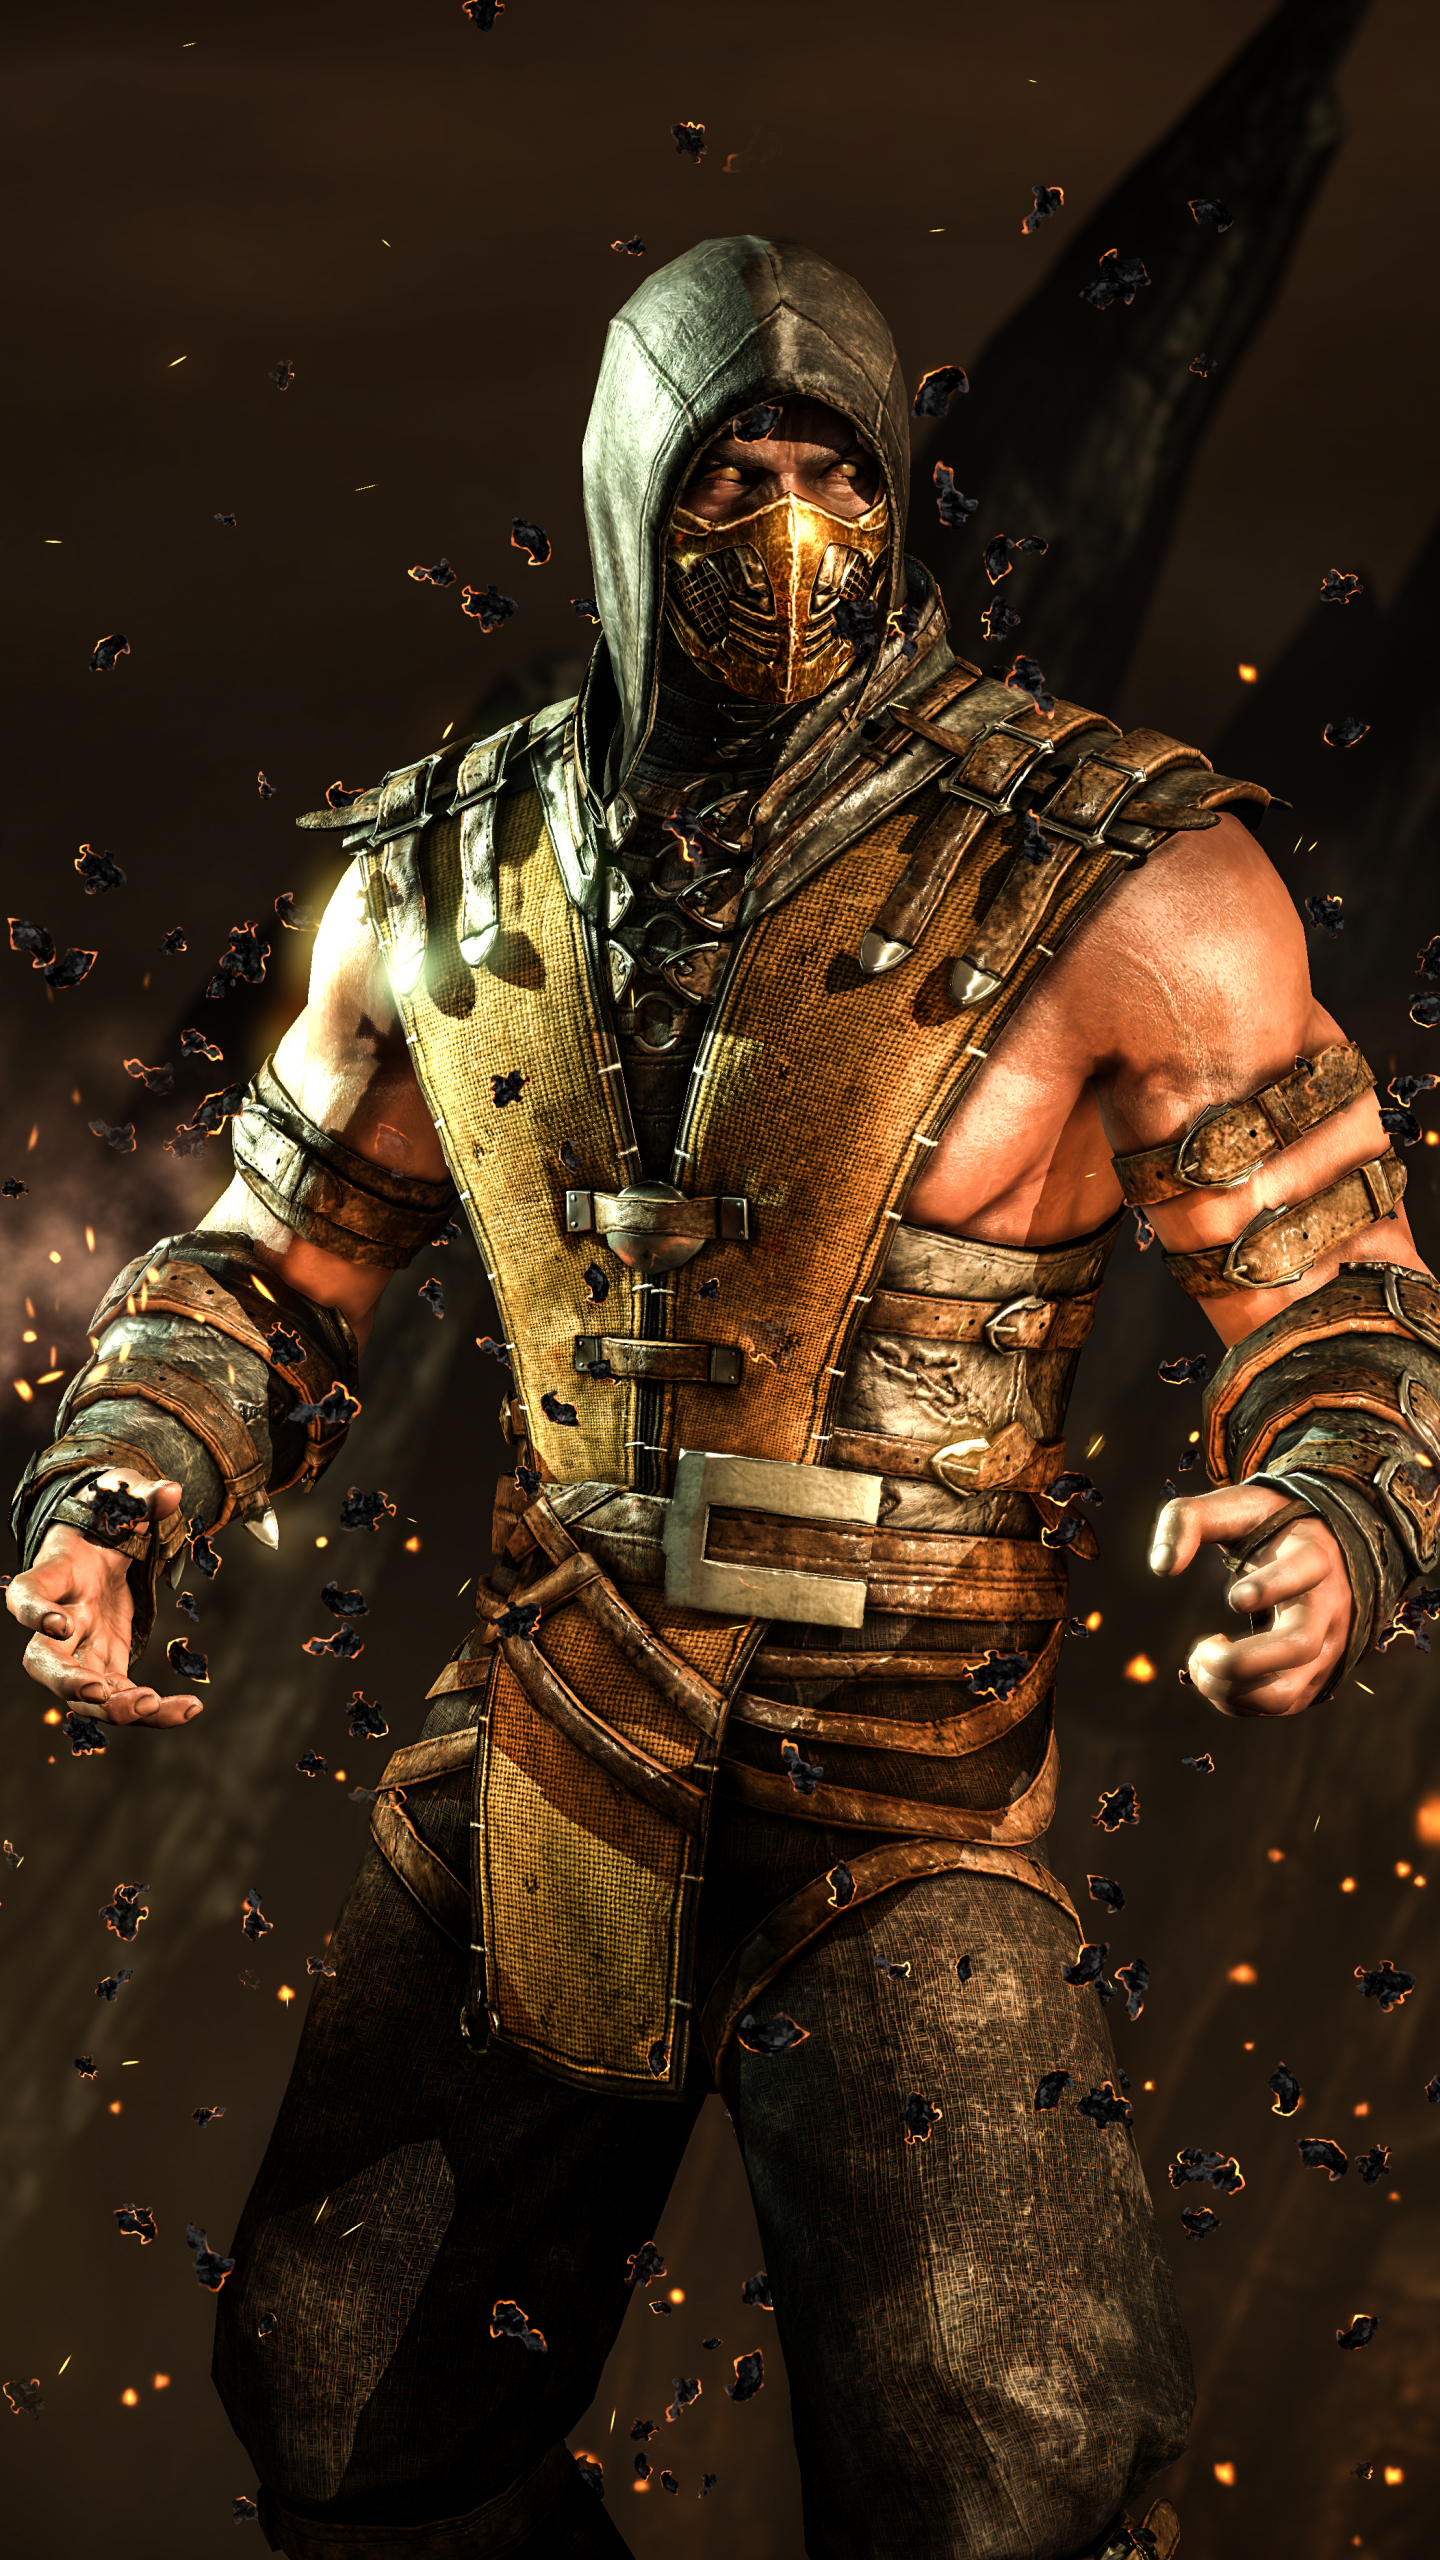 scorpion mortal kombat x iphone wallpaper